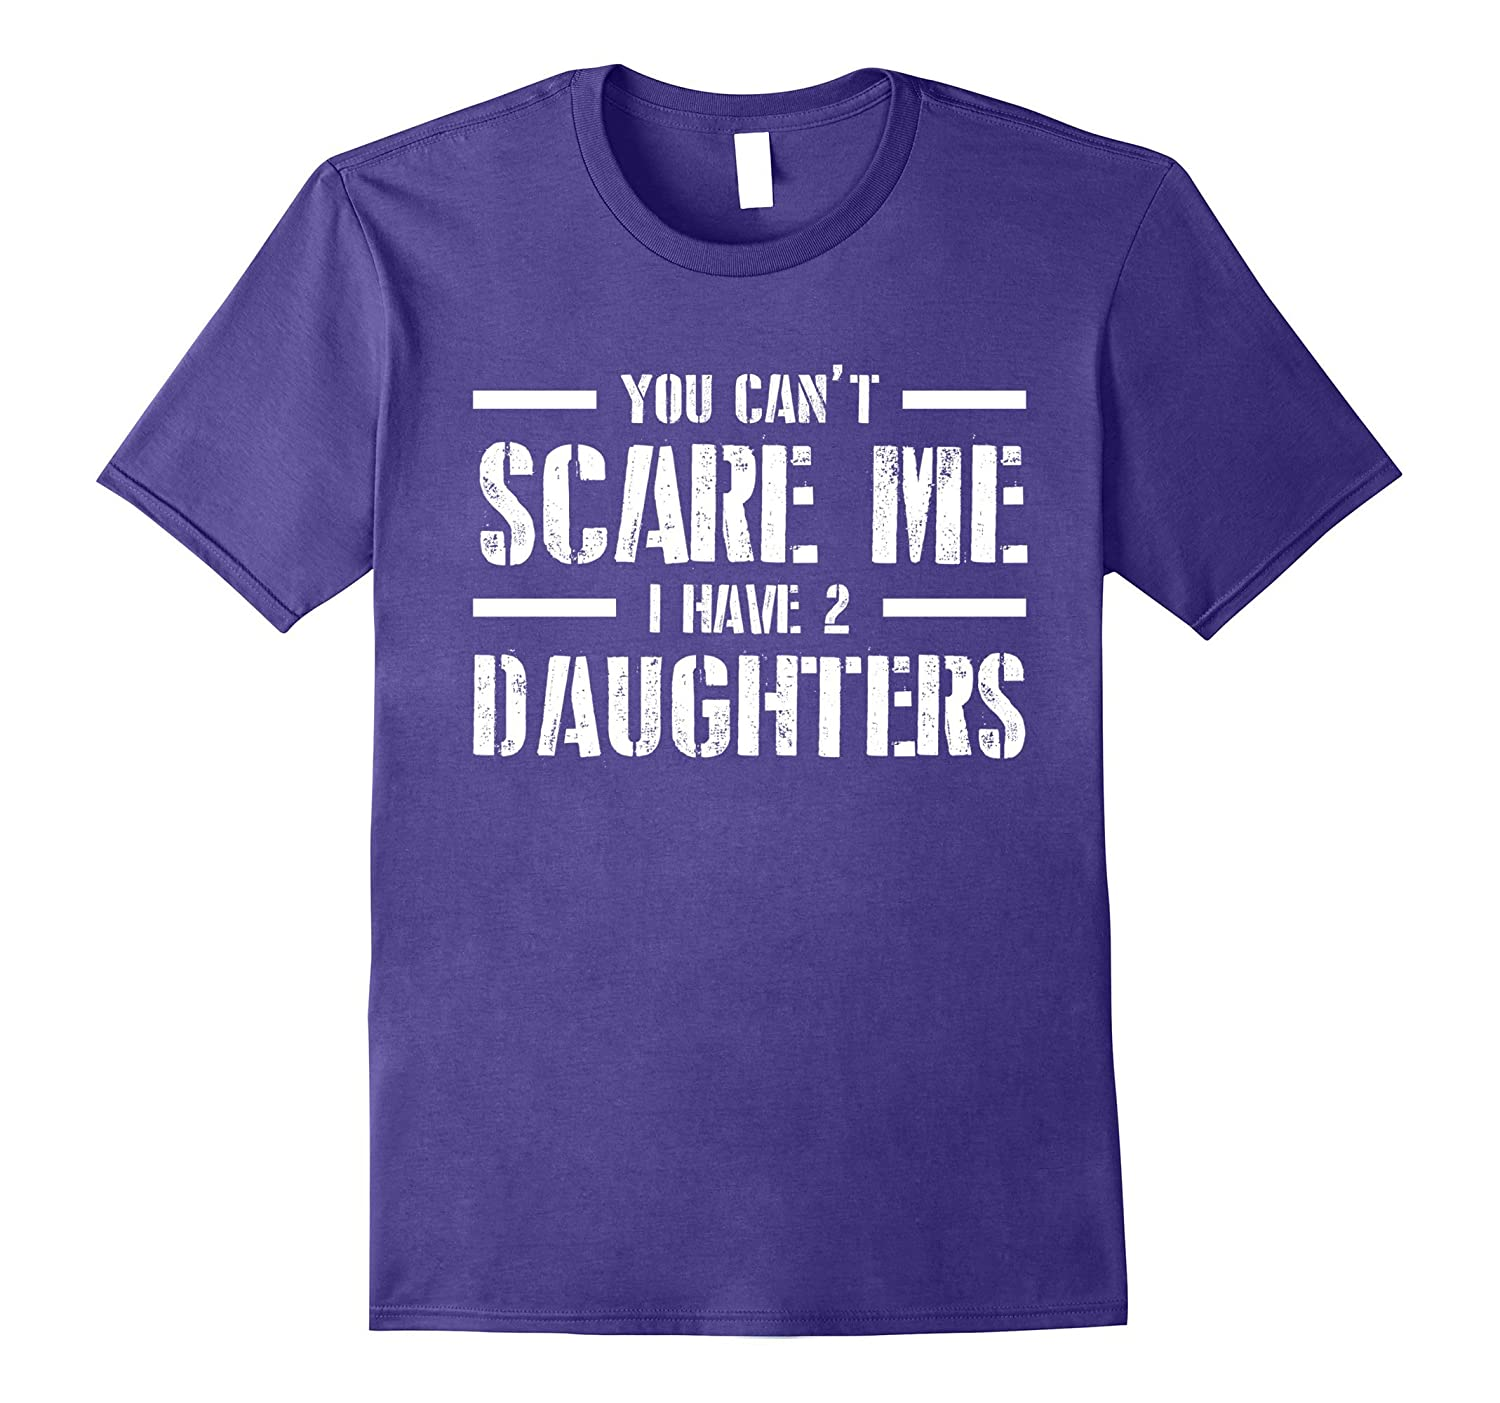 You Cant Scare Me I Have 2 Daughters New W1 T-shirt-Vaci